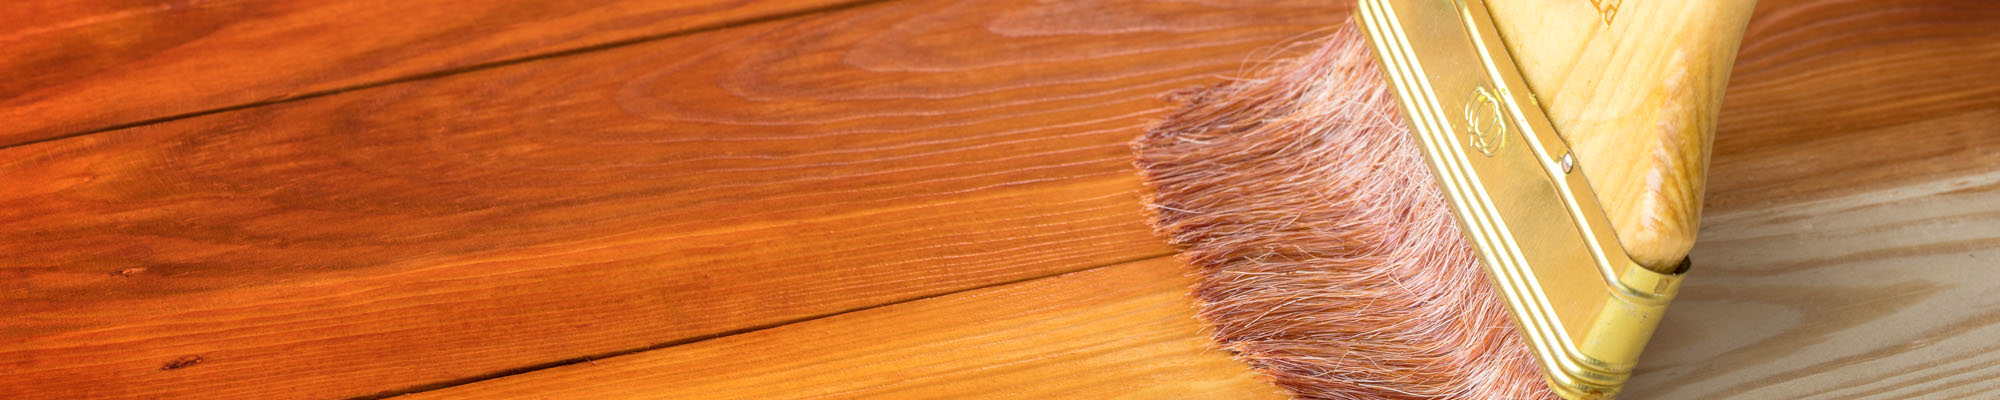 A Complete Guide To All Types Of Wood Finishes Octane Seating